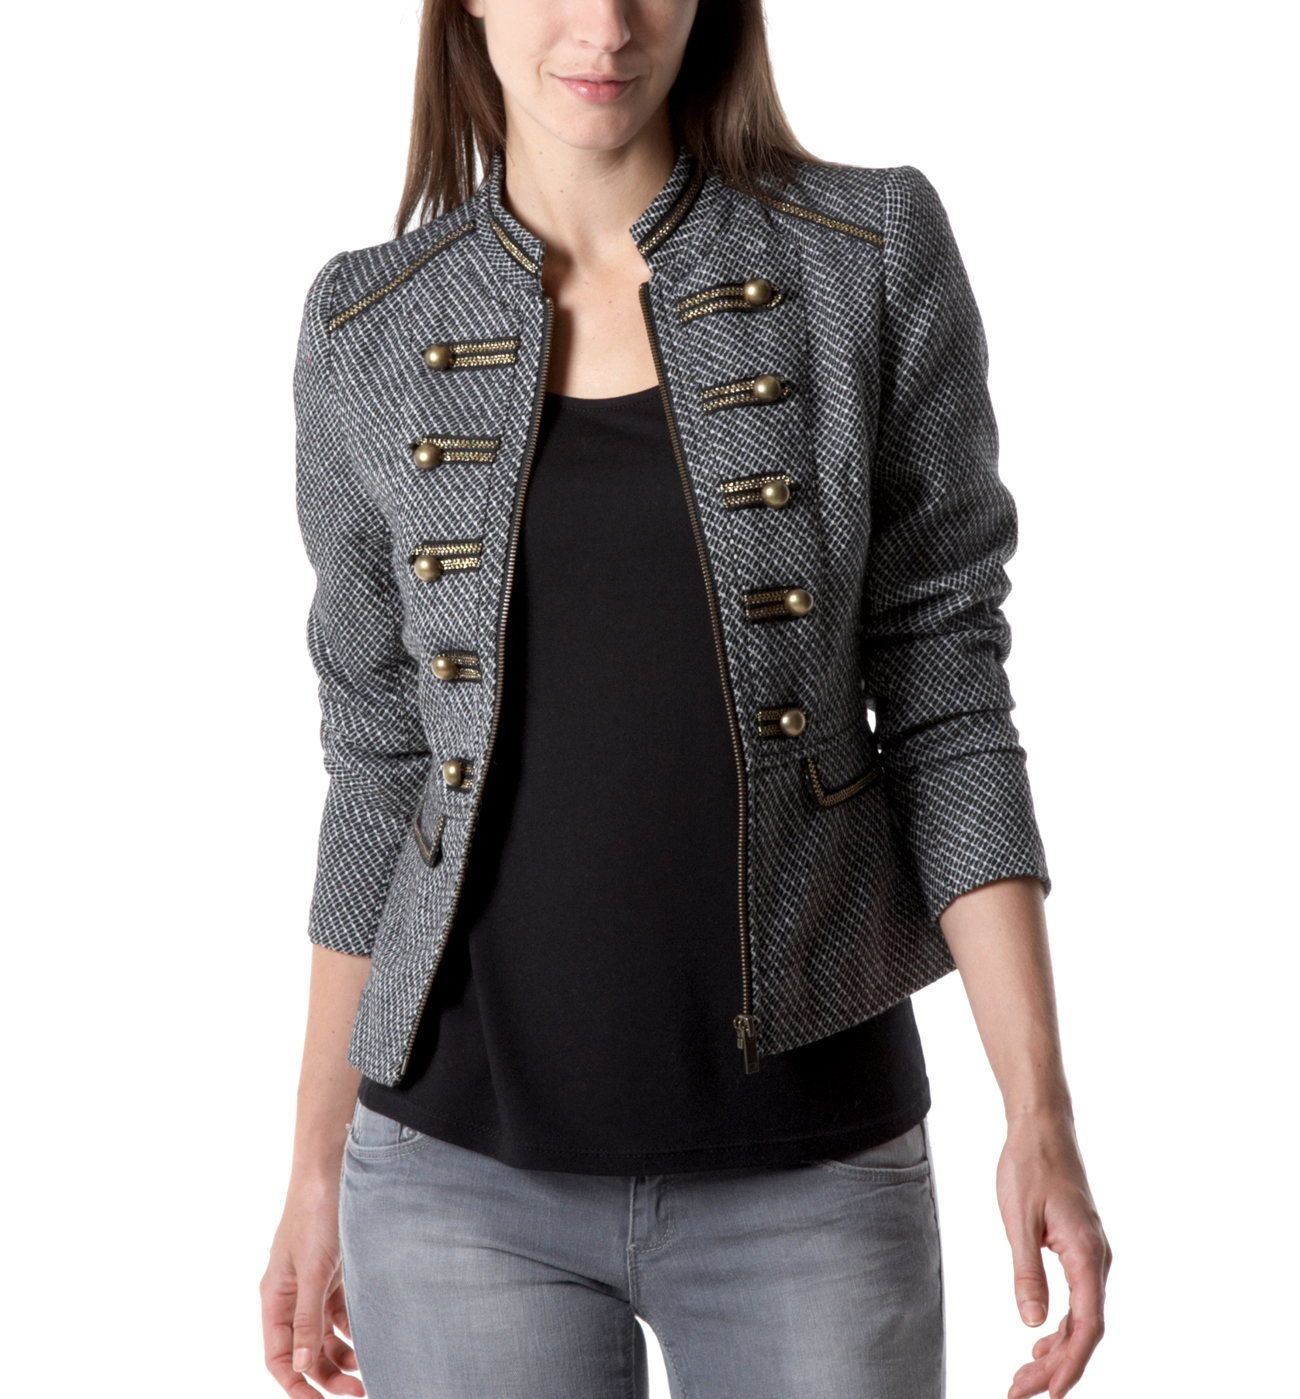 jacket Black Military Promod Jackets Women print thQxCsdr